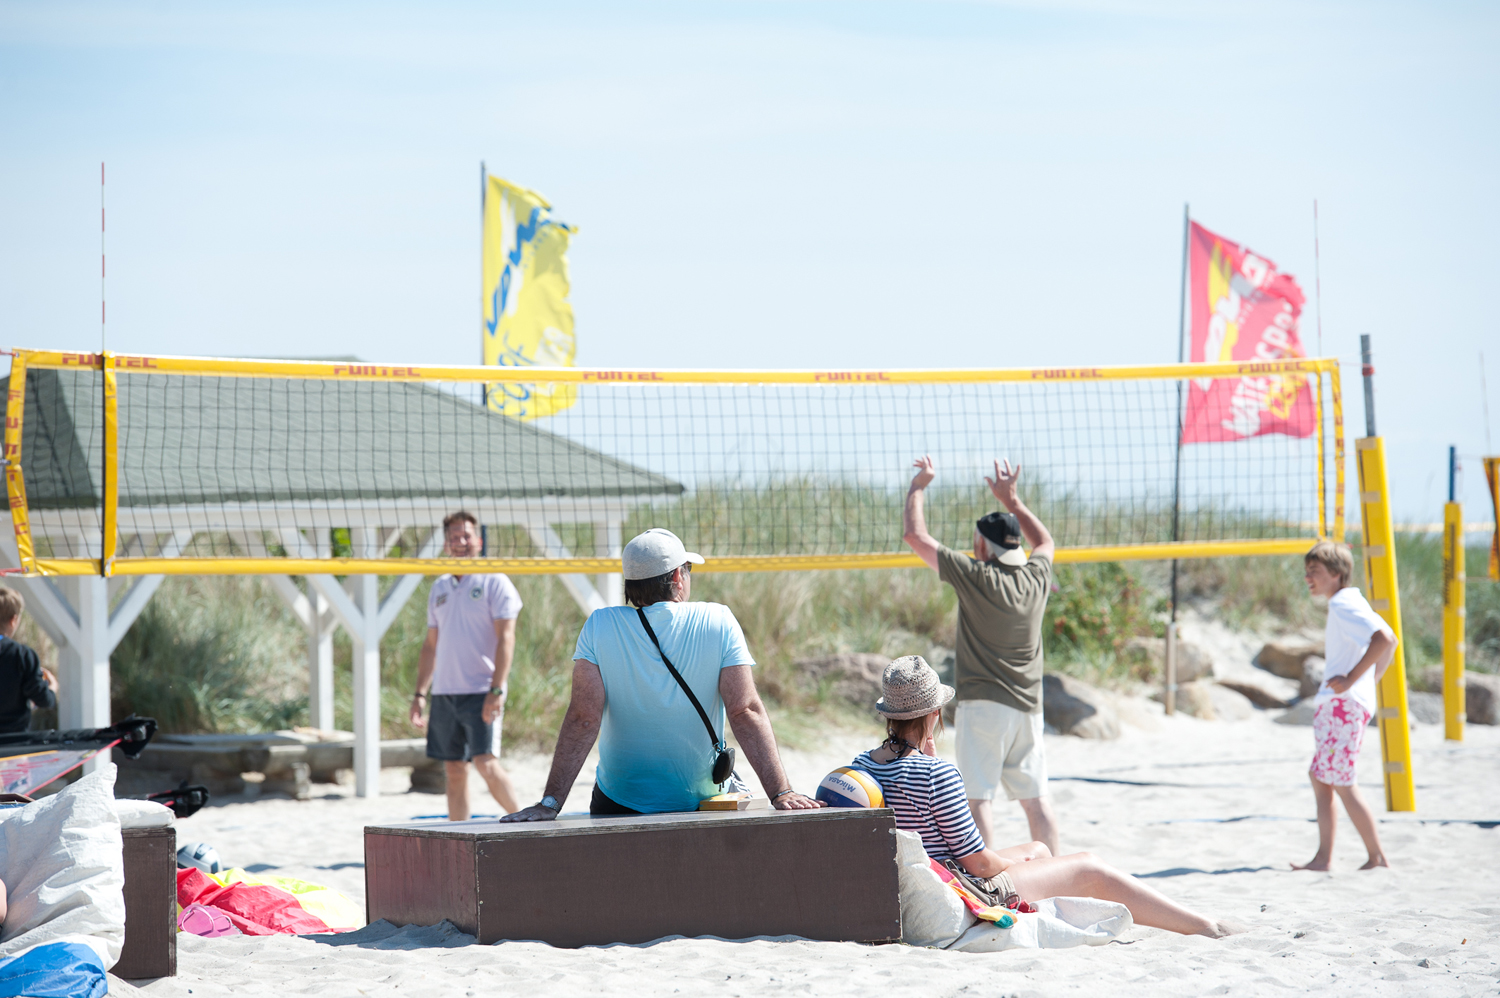 Beachvolleyball in Grömitz